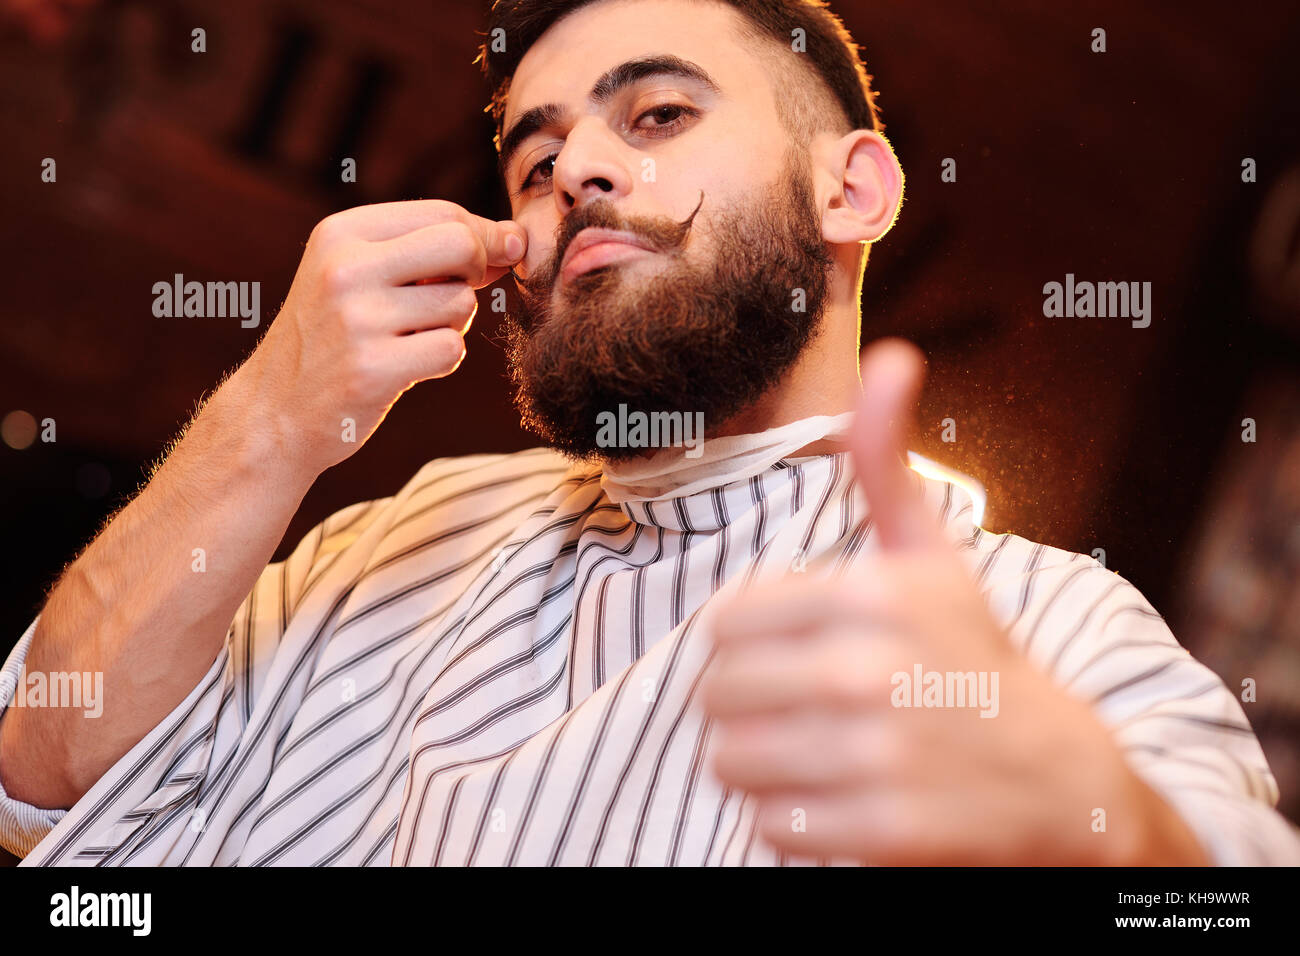 man with beautiful mustache and beard sitting in an armchair in barbershop Stock Photo